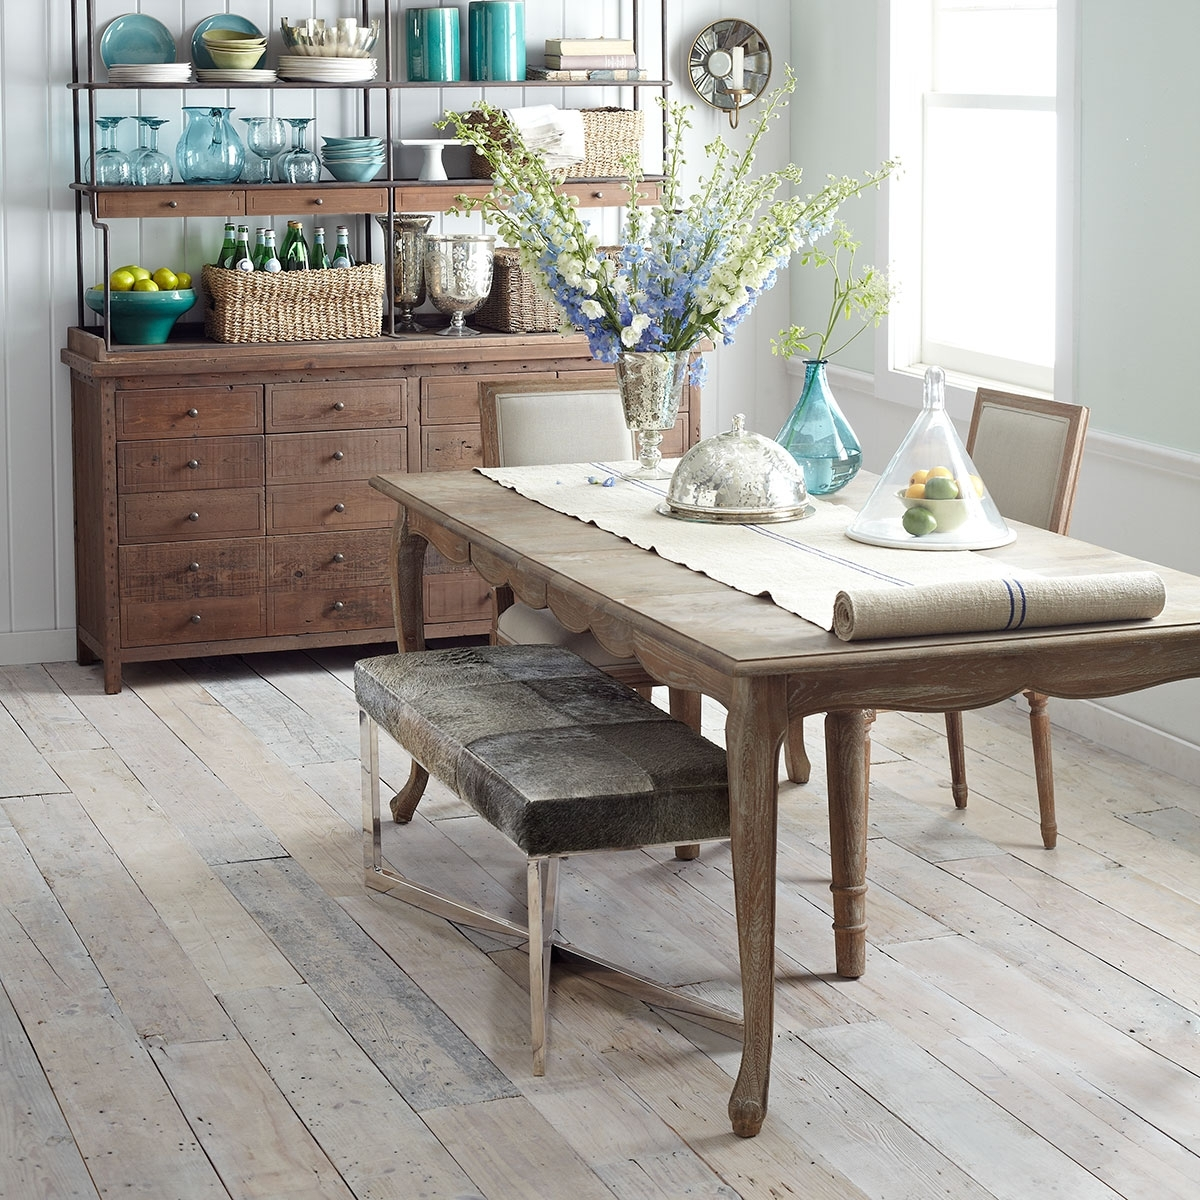 Most Popular Qualities Of French Dining Tables – Home Decor Ideas Regarding French Country Dining Tables (View 21 of 25)